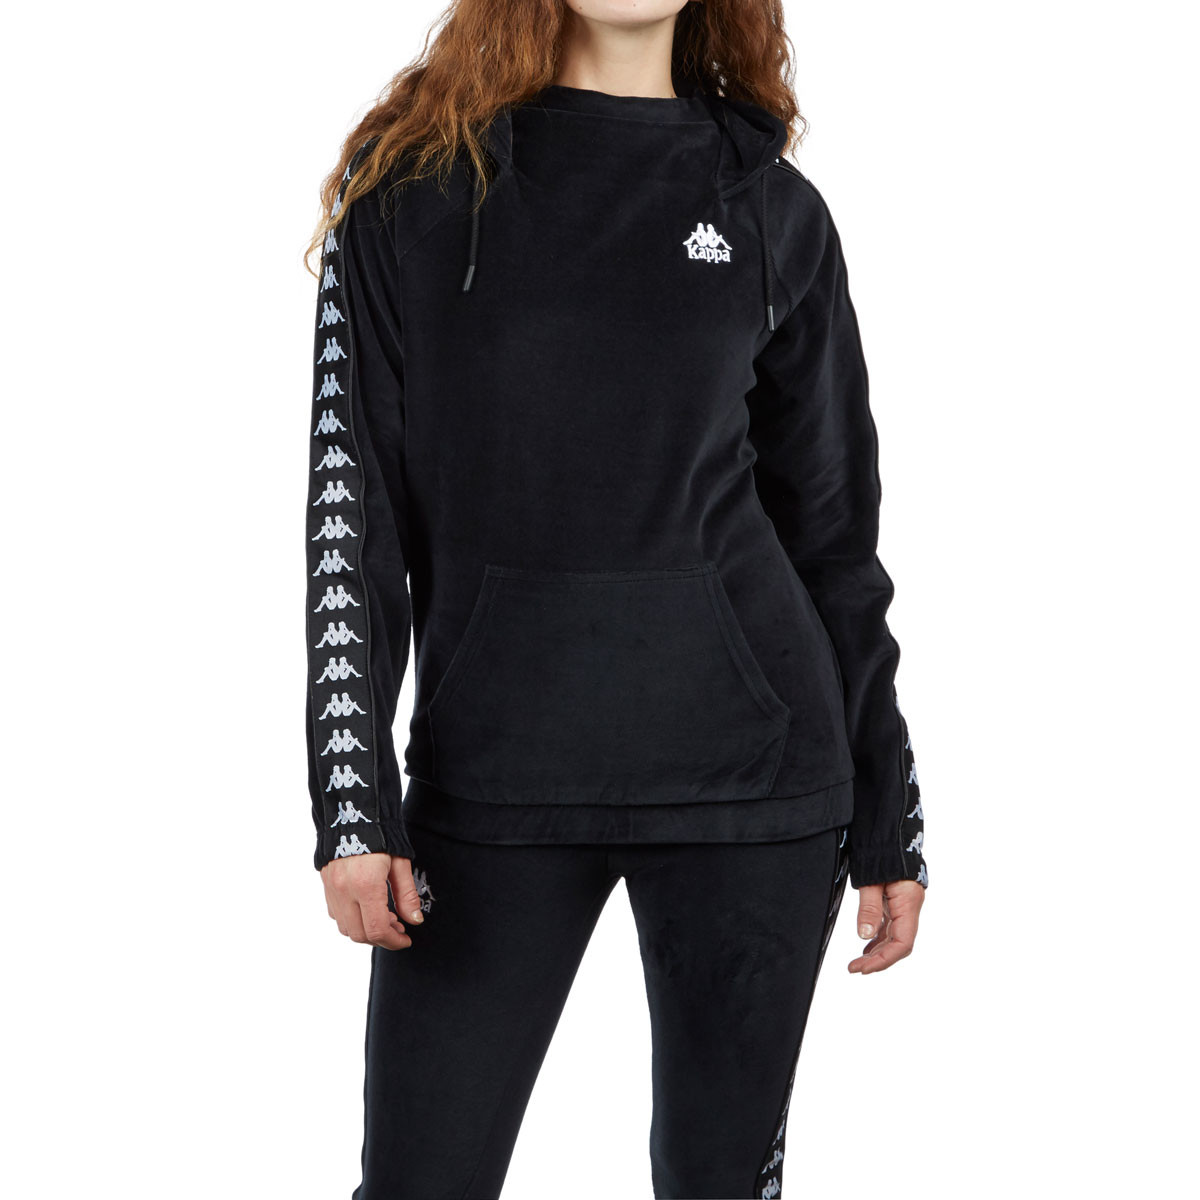 dce40fe1db Kappa Womens Authentic Asper Hoodie - Black/White